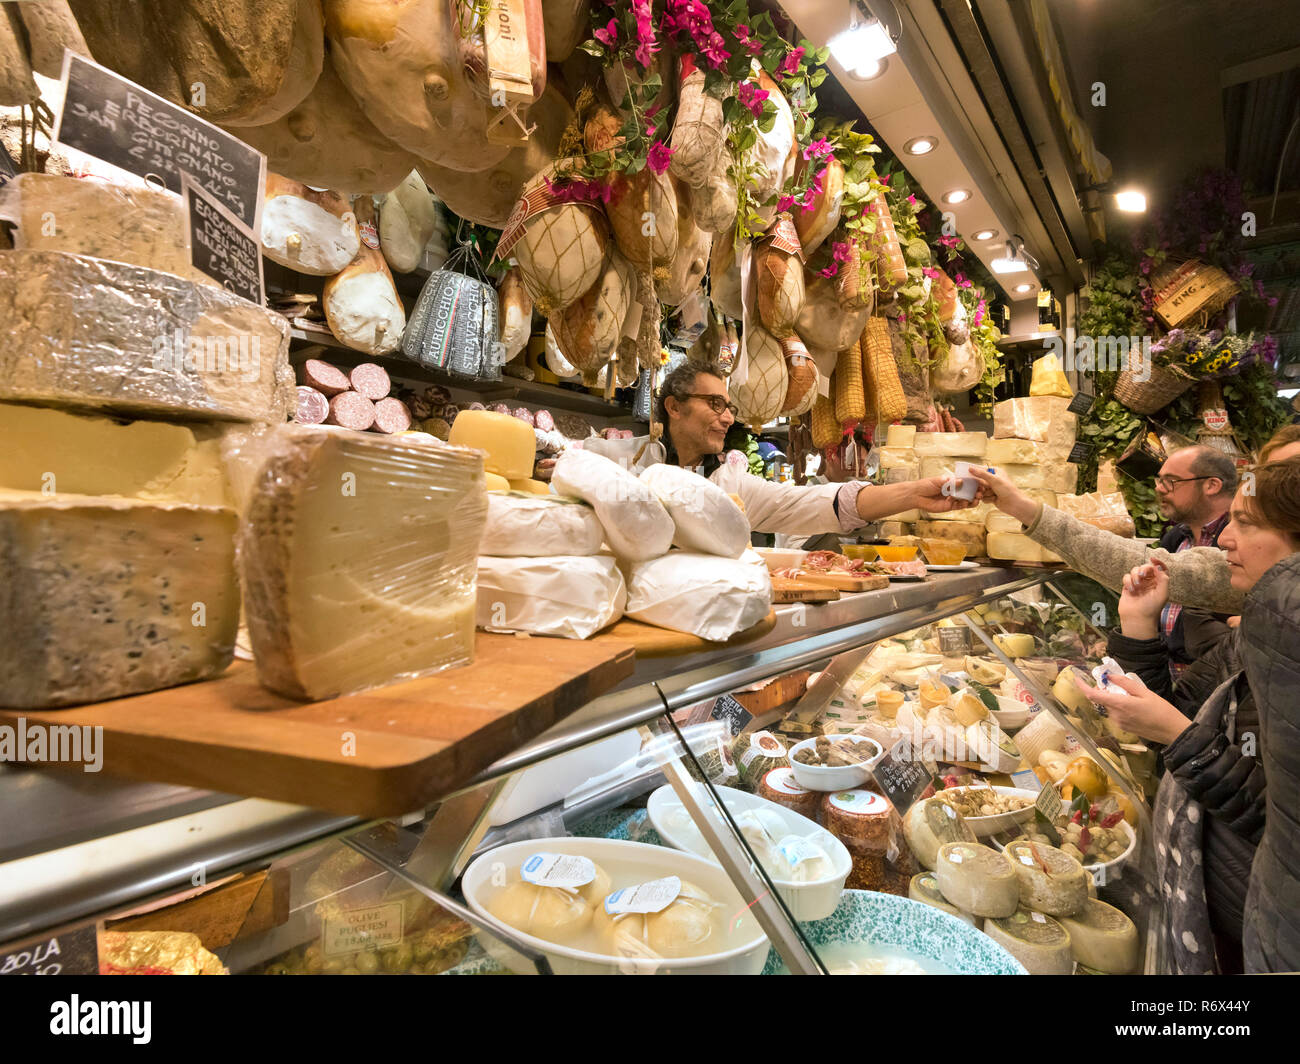 Horizontal portrait of customers inside the Mercato Centrale in Florence, Italy. - Stock Image